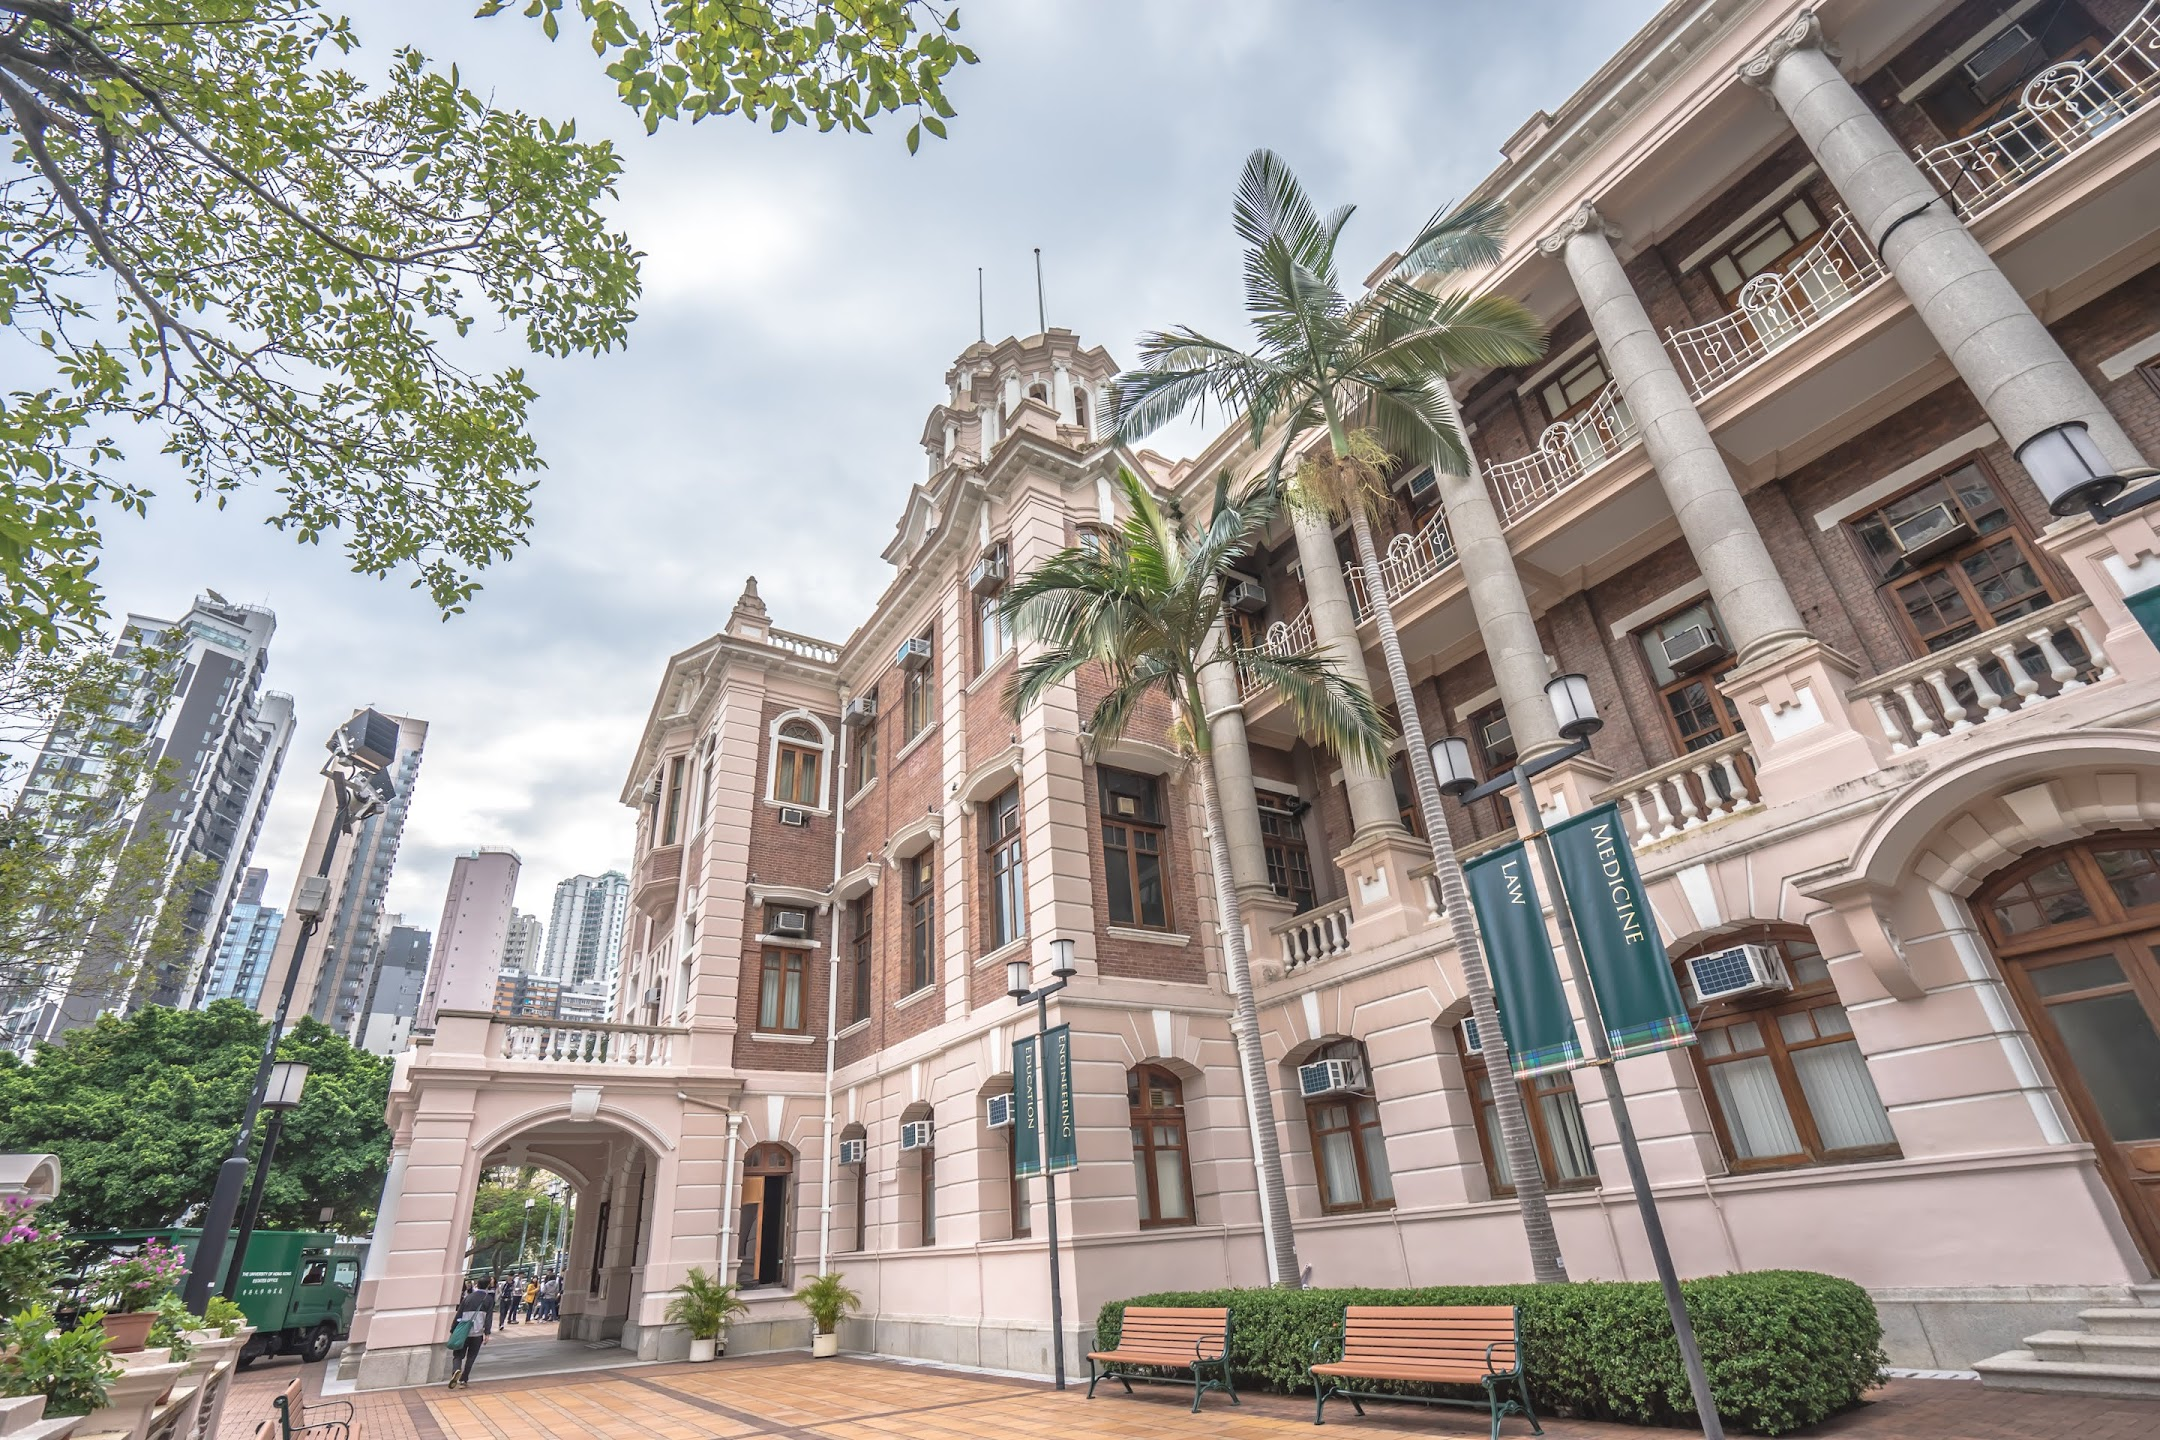 Hong Kong University Main Building2